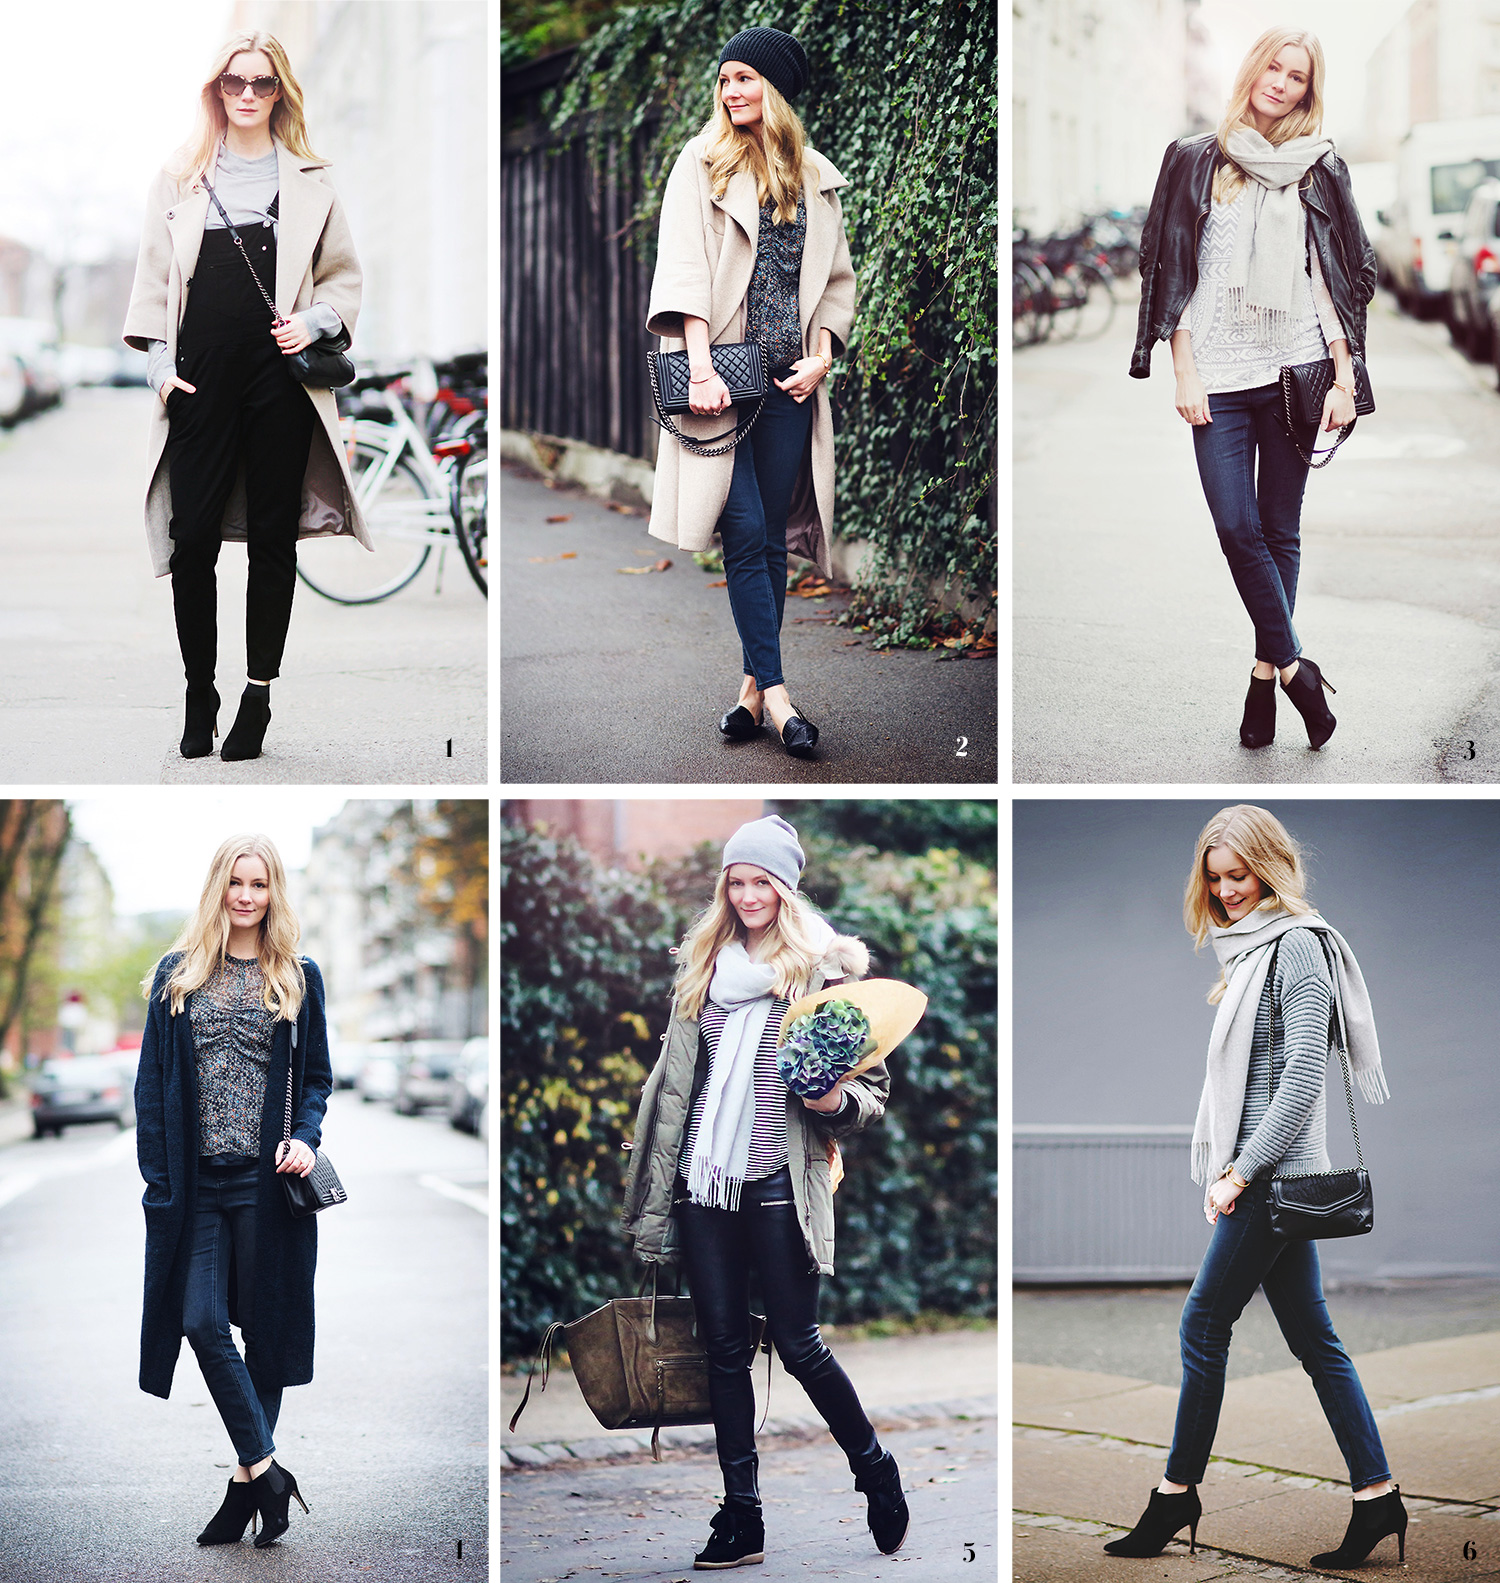 outfits-modeblog@2x